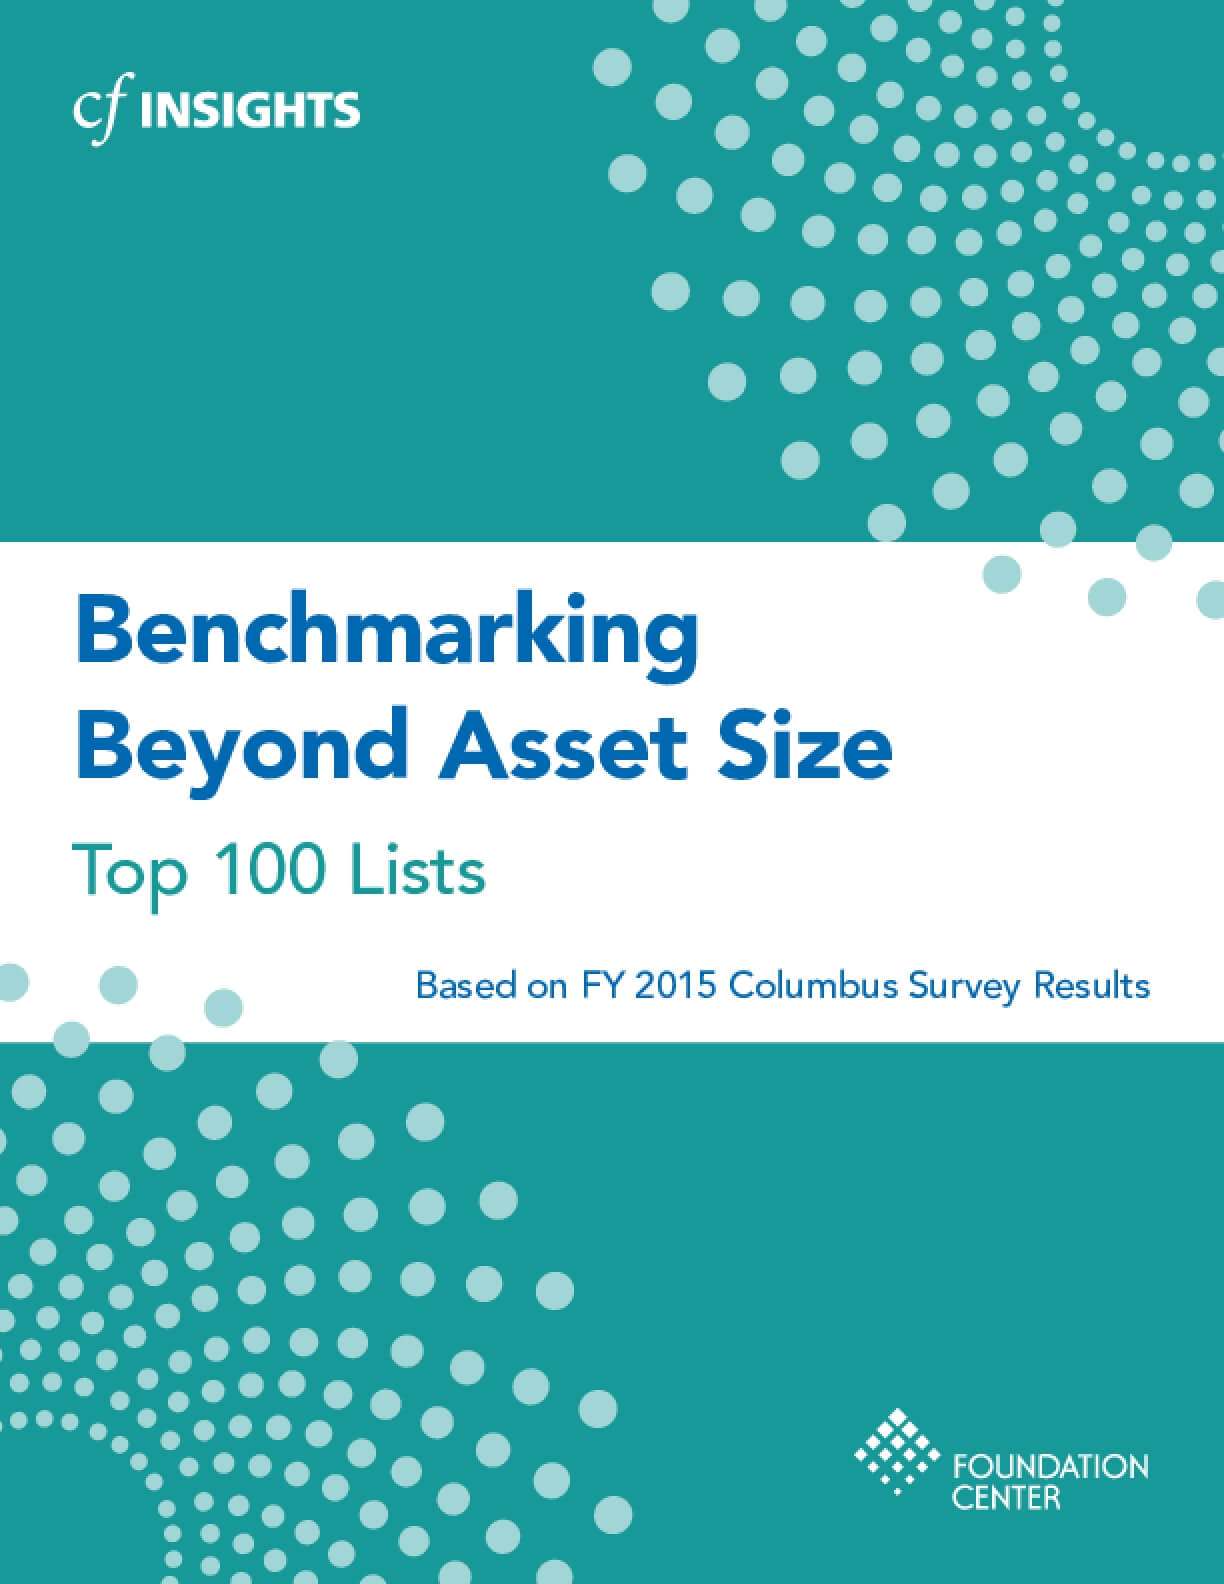 Benchmarking Beyond Asset Size Top 100 Lists - FY 2015